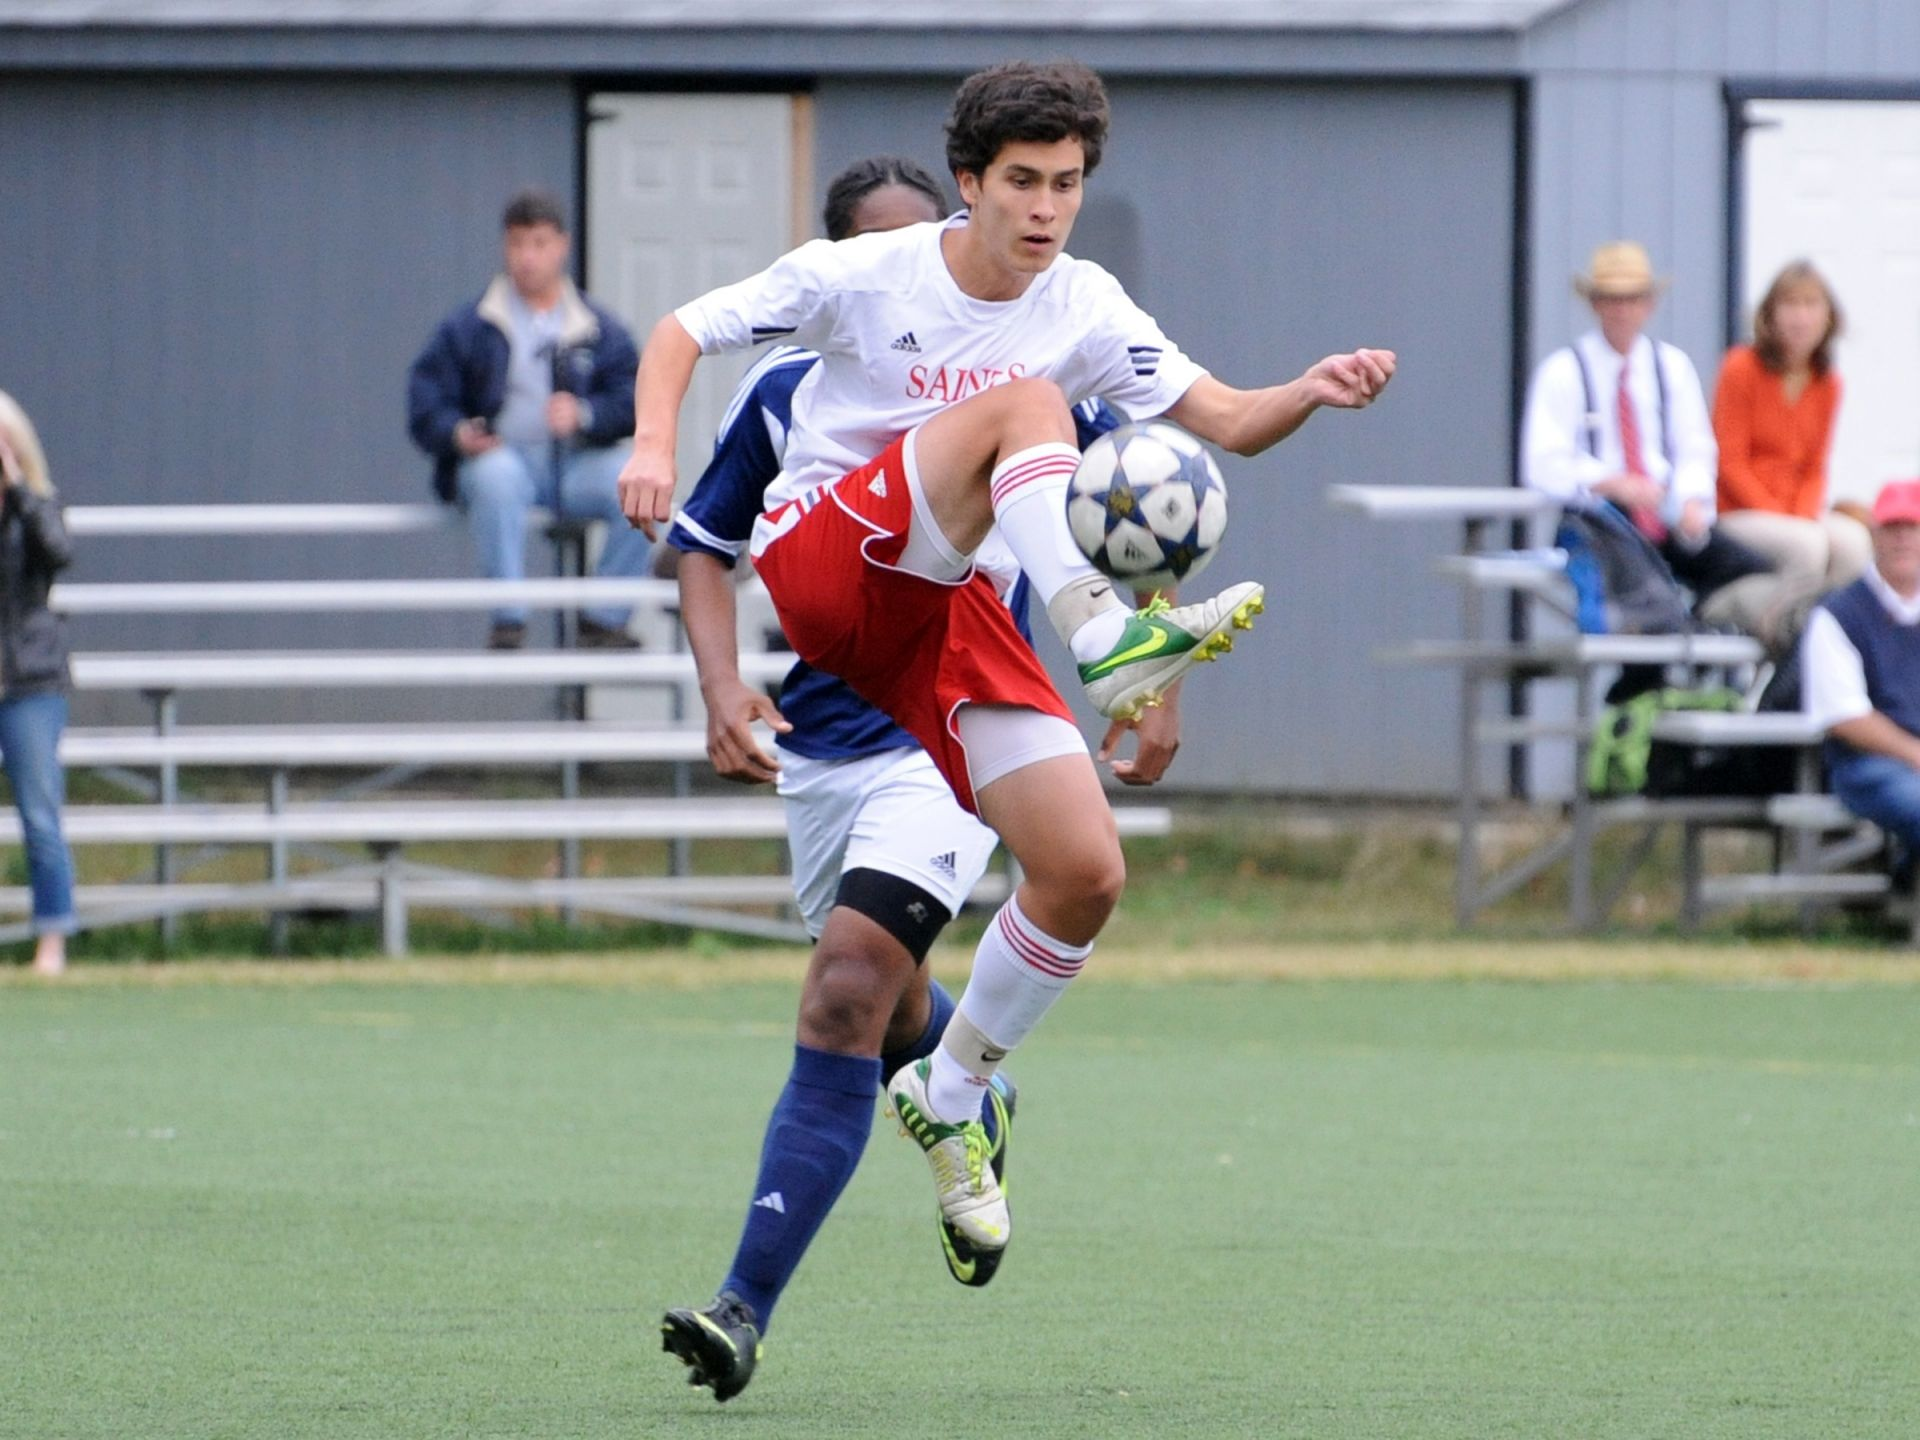 ANDREW ARNOLD | SOCCER | UNITED STATES MERCHANT MARINE ACADEMY